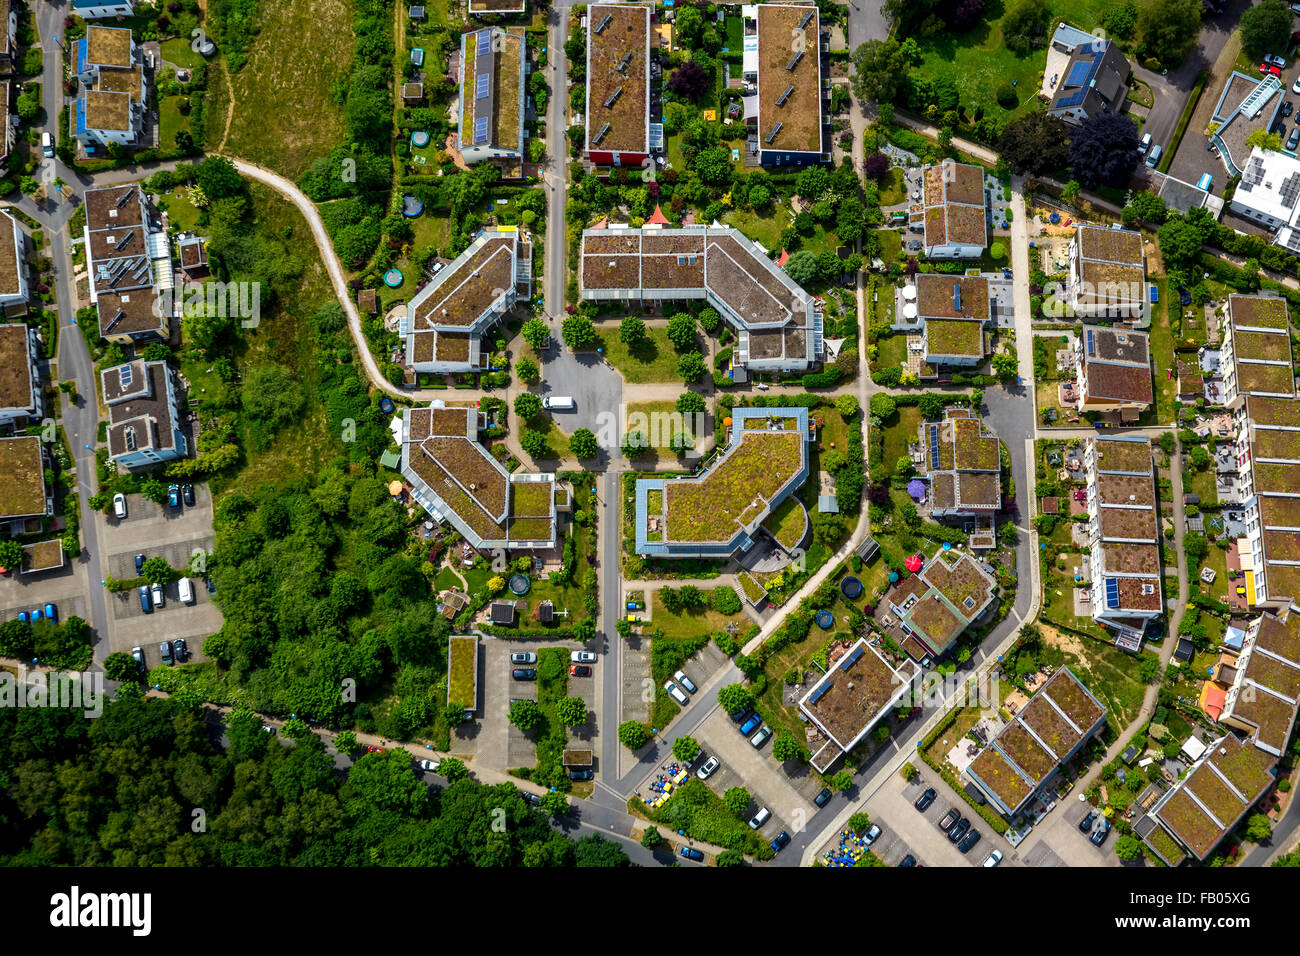 Ecological housing Goldammerweg and Kiebitzweg with a village square, settlement center, urban, sword, Ruhr area, - Stock Image